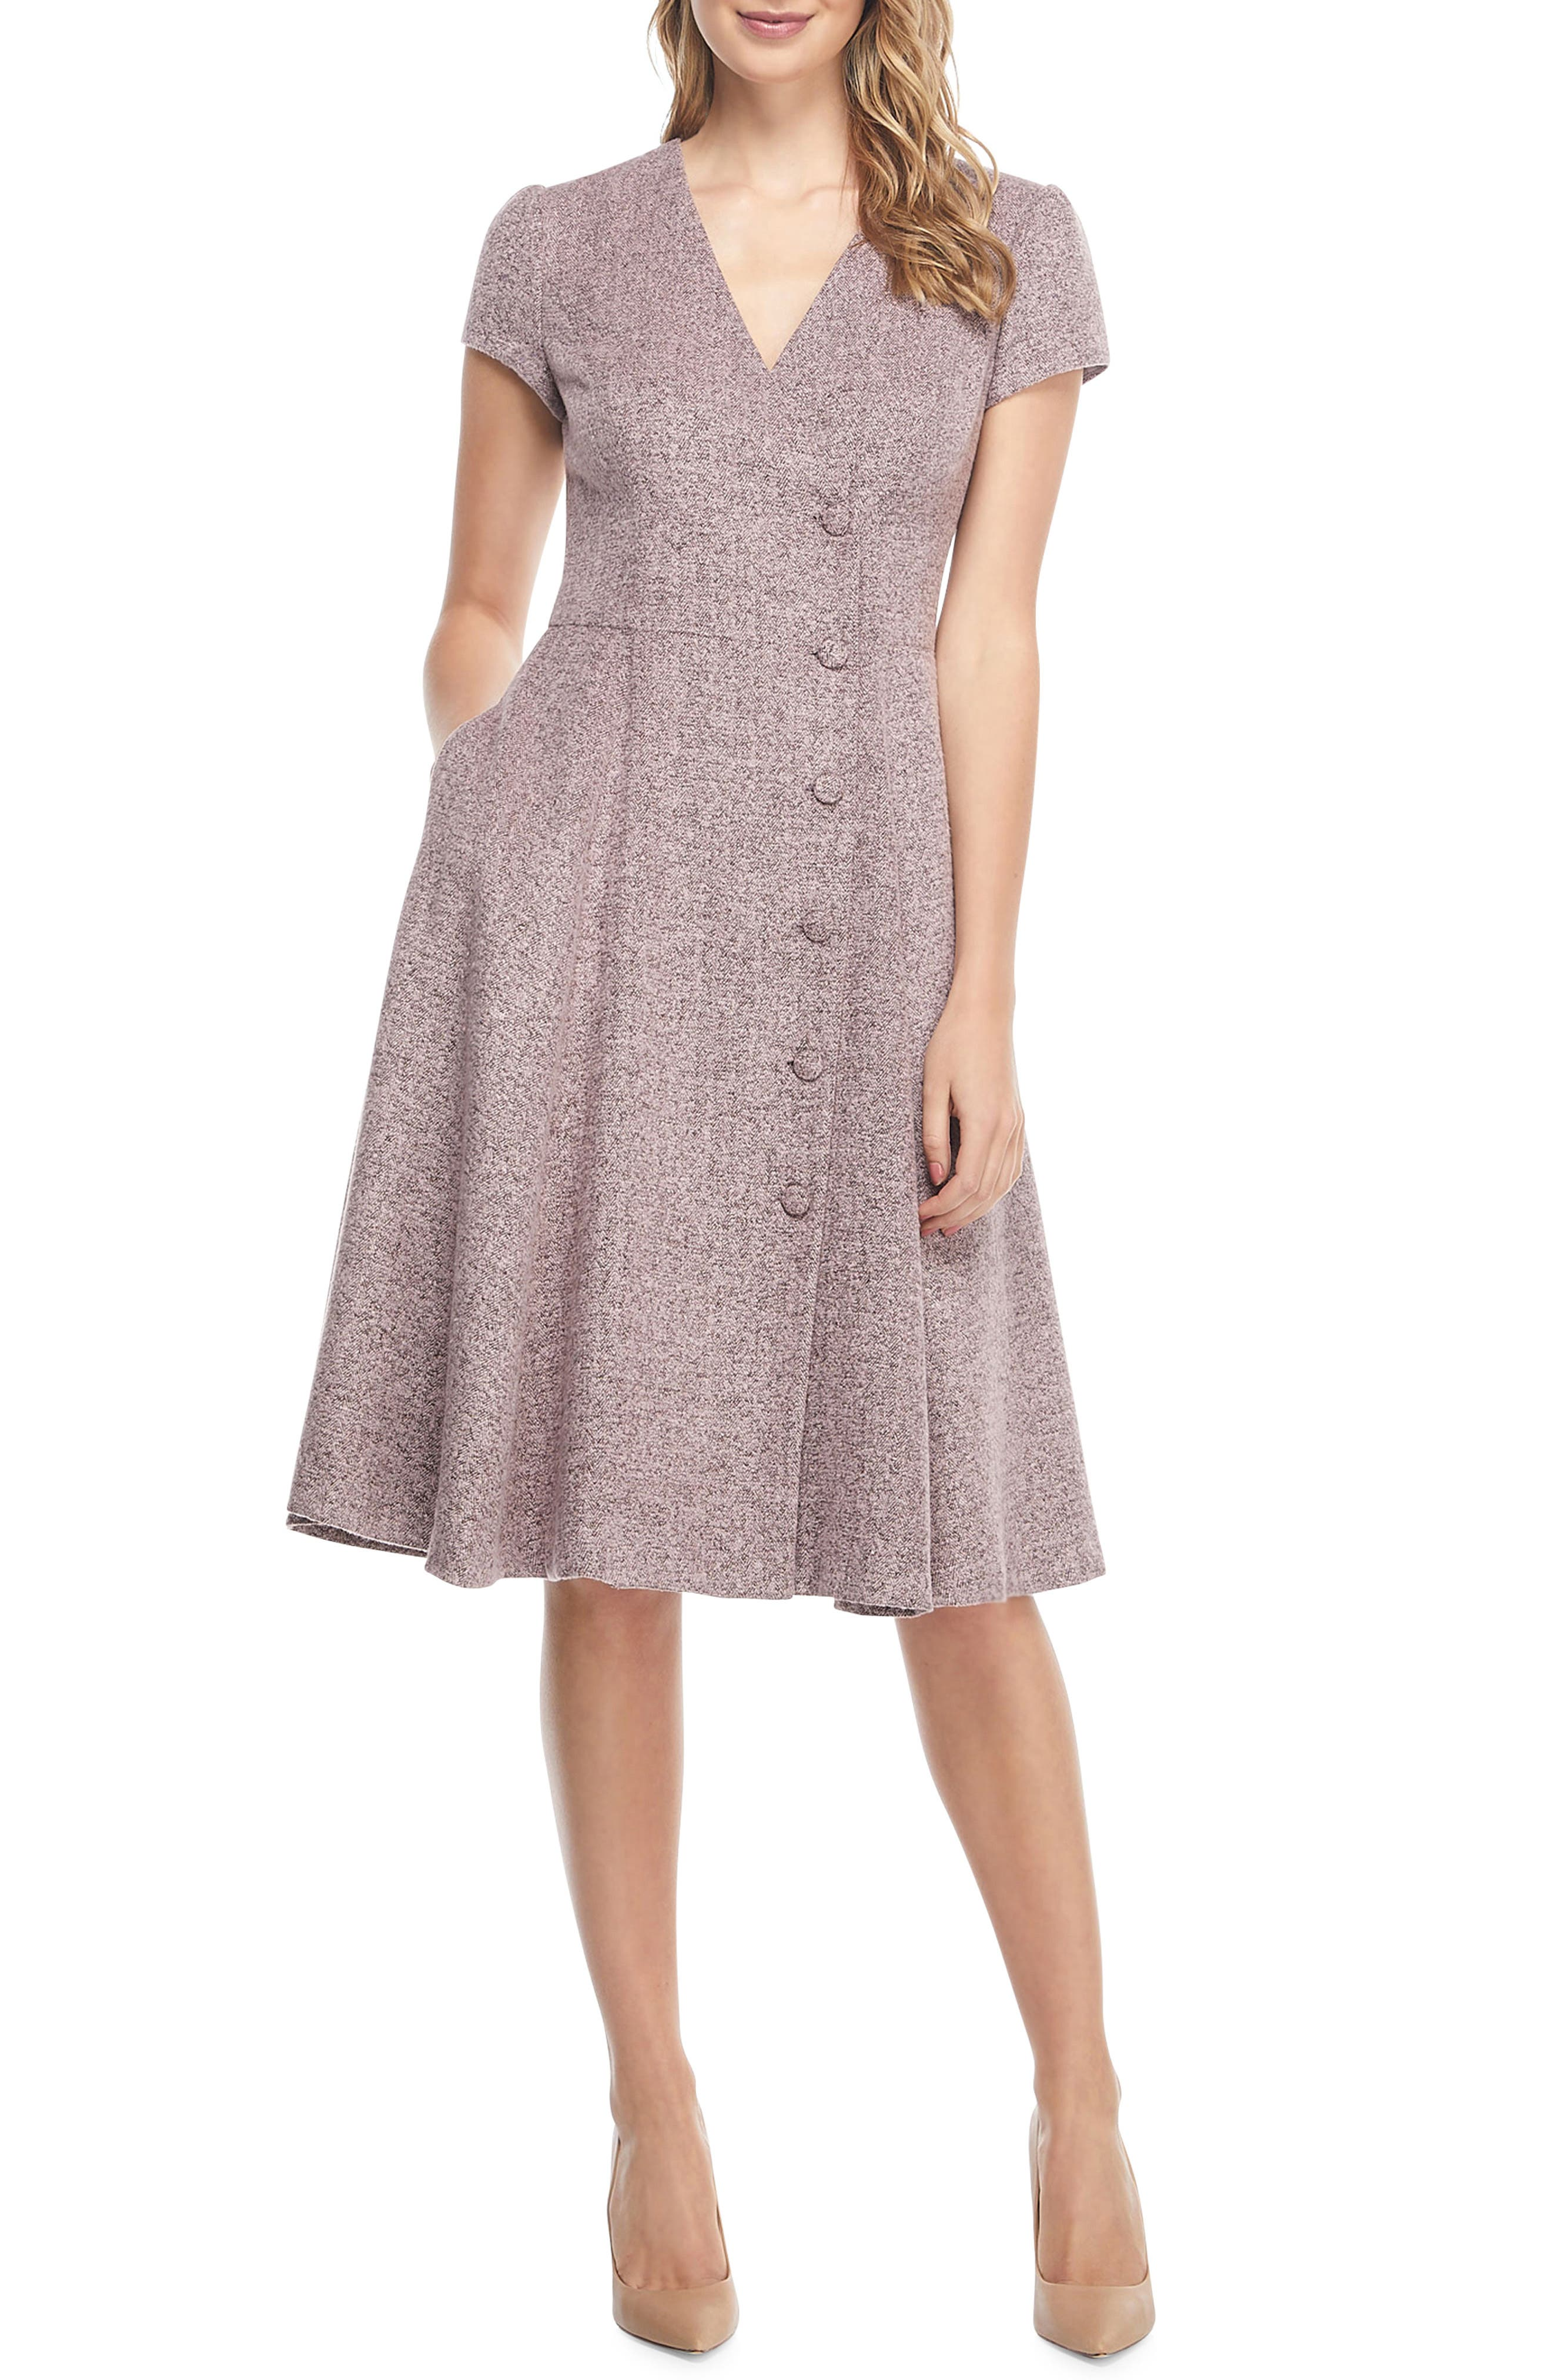 Agatha Dainty Tweed Dress,                             Main thumbnail 1, color,                             650